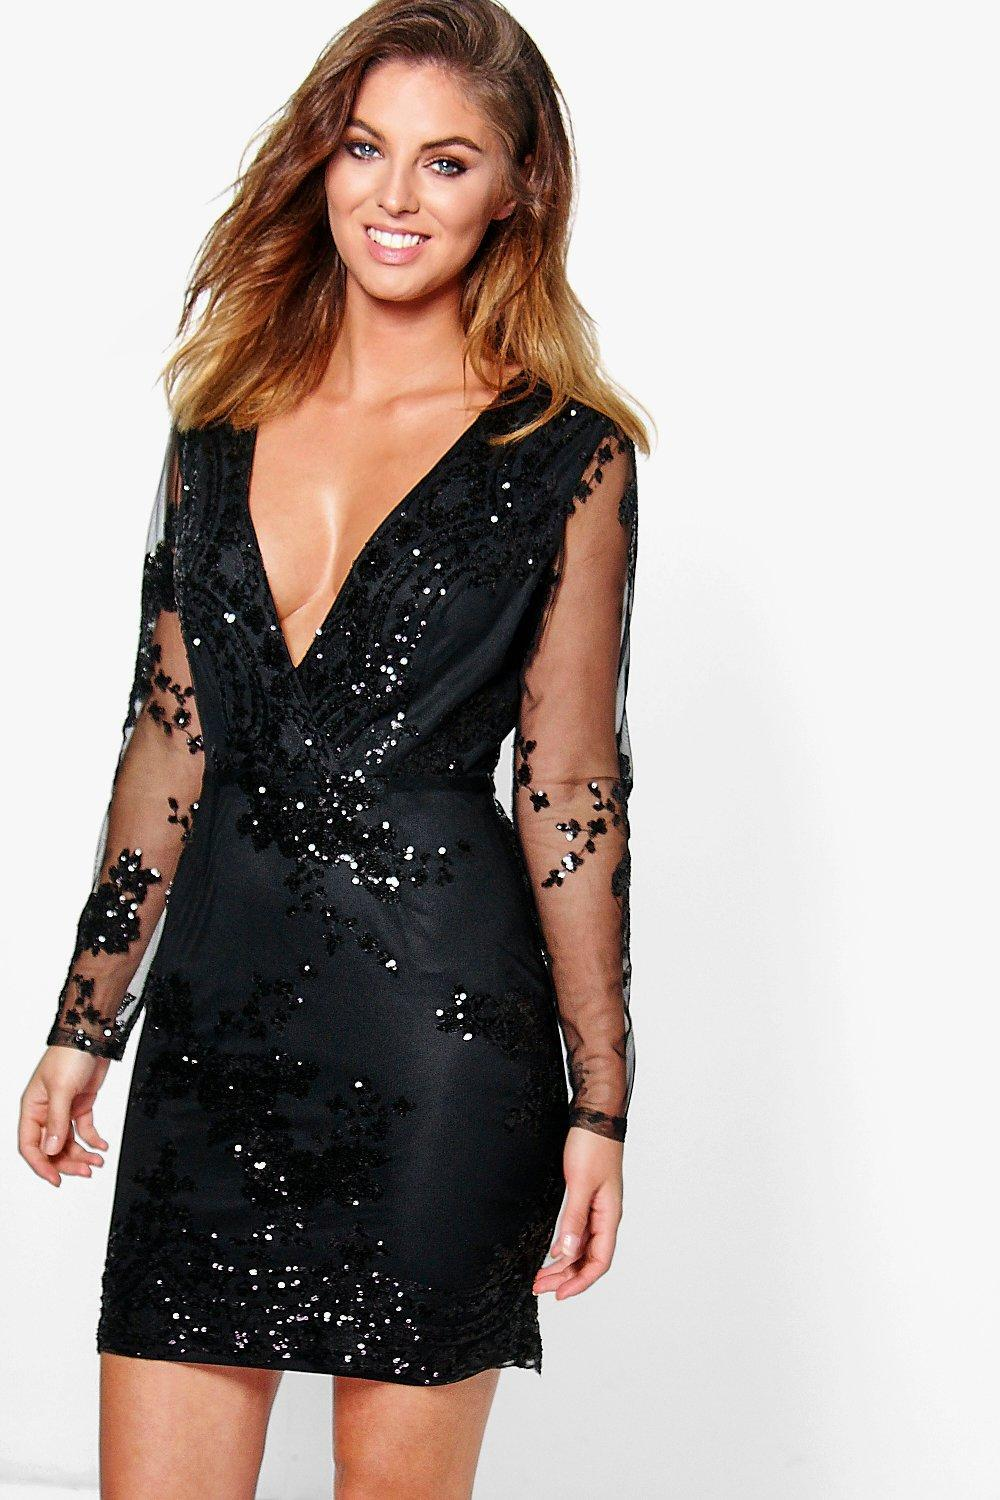 Boohoo Boutique Sequin Print Mesh Bodycon Dress in Black - Lyst 0d158373a